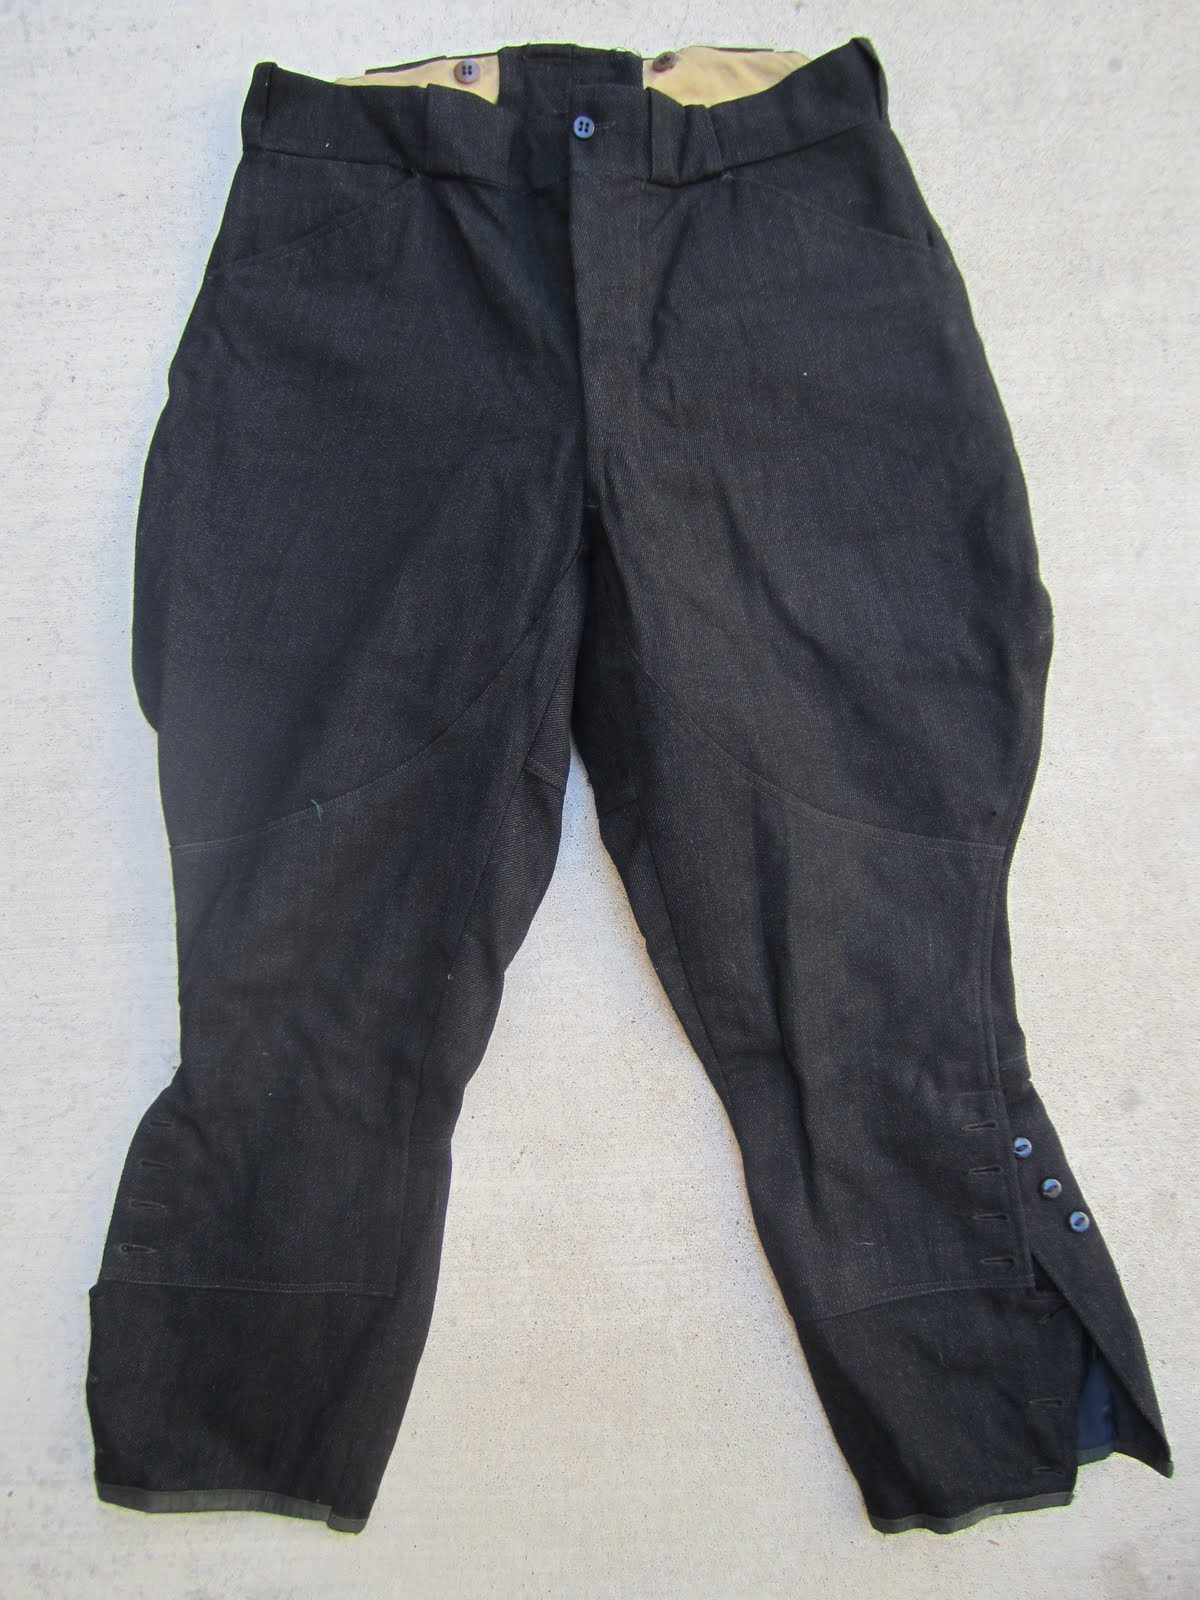 pill stash motorcycle riding pants  sold